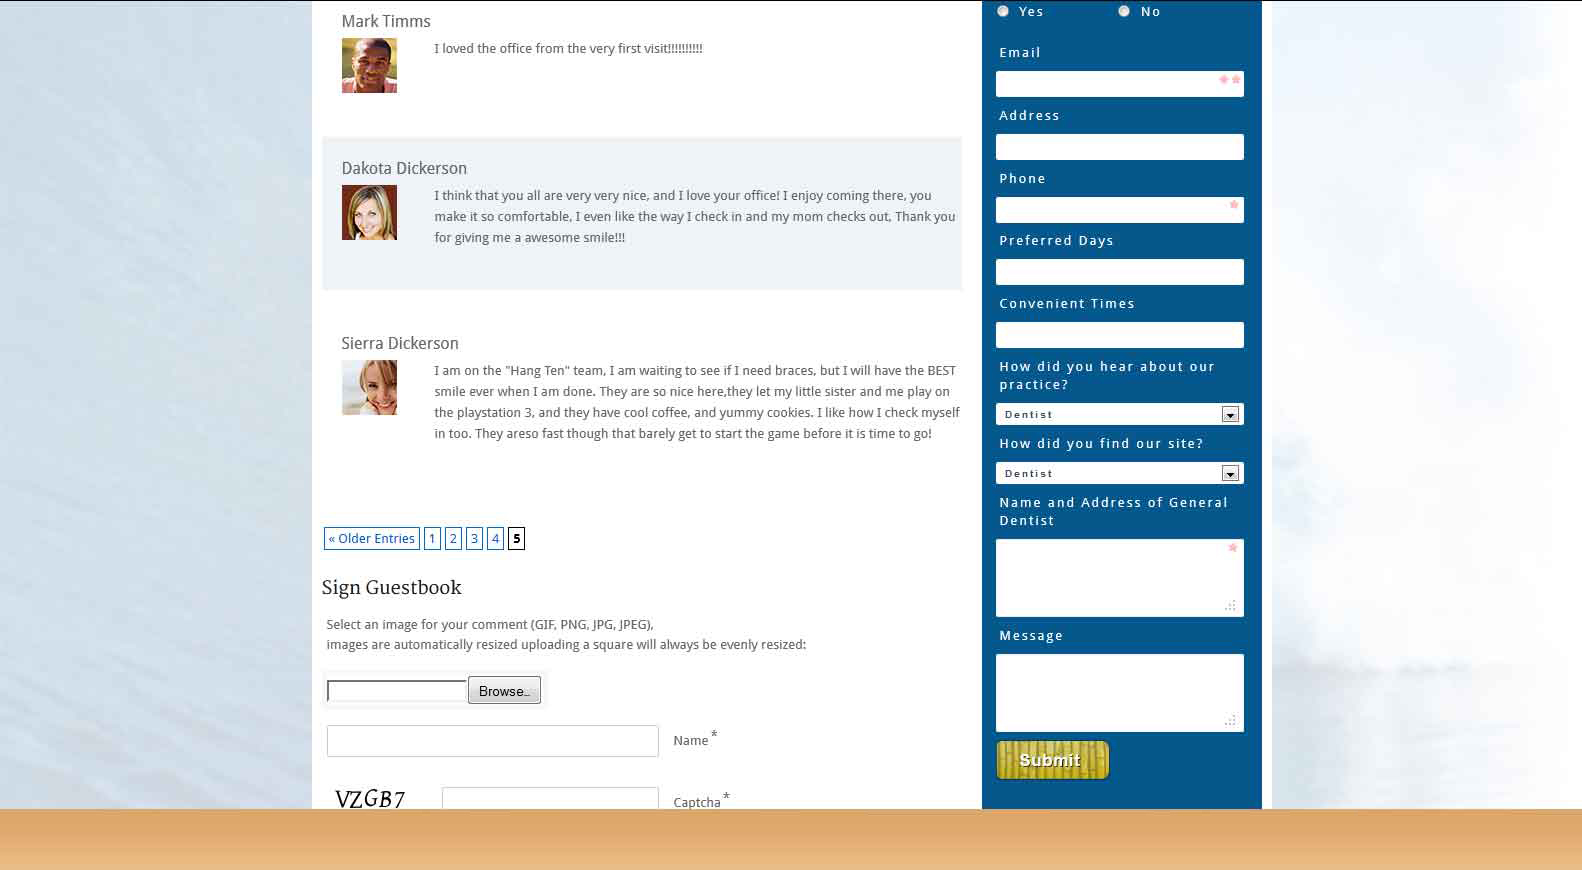 Screenshot of comments with images being used as Gravatars.